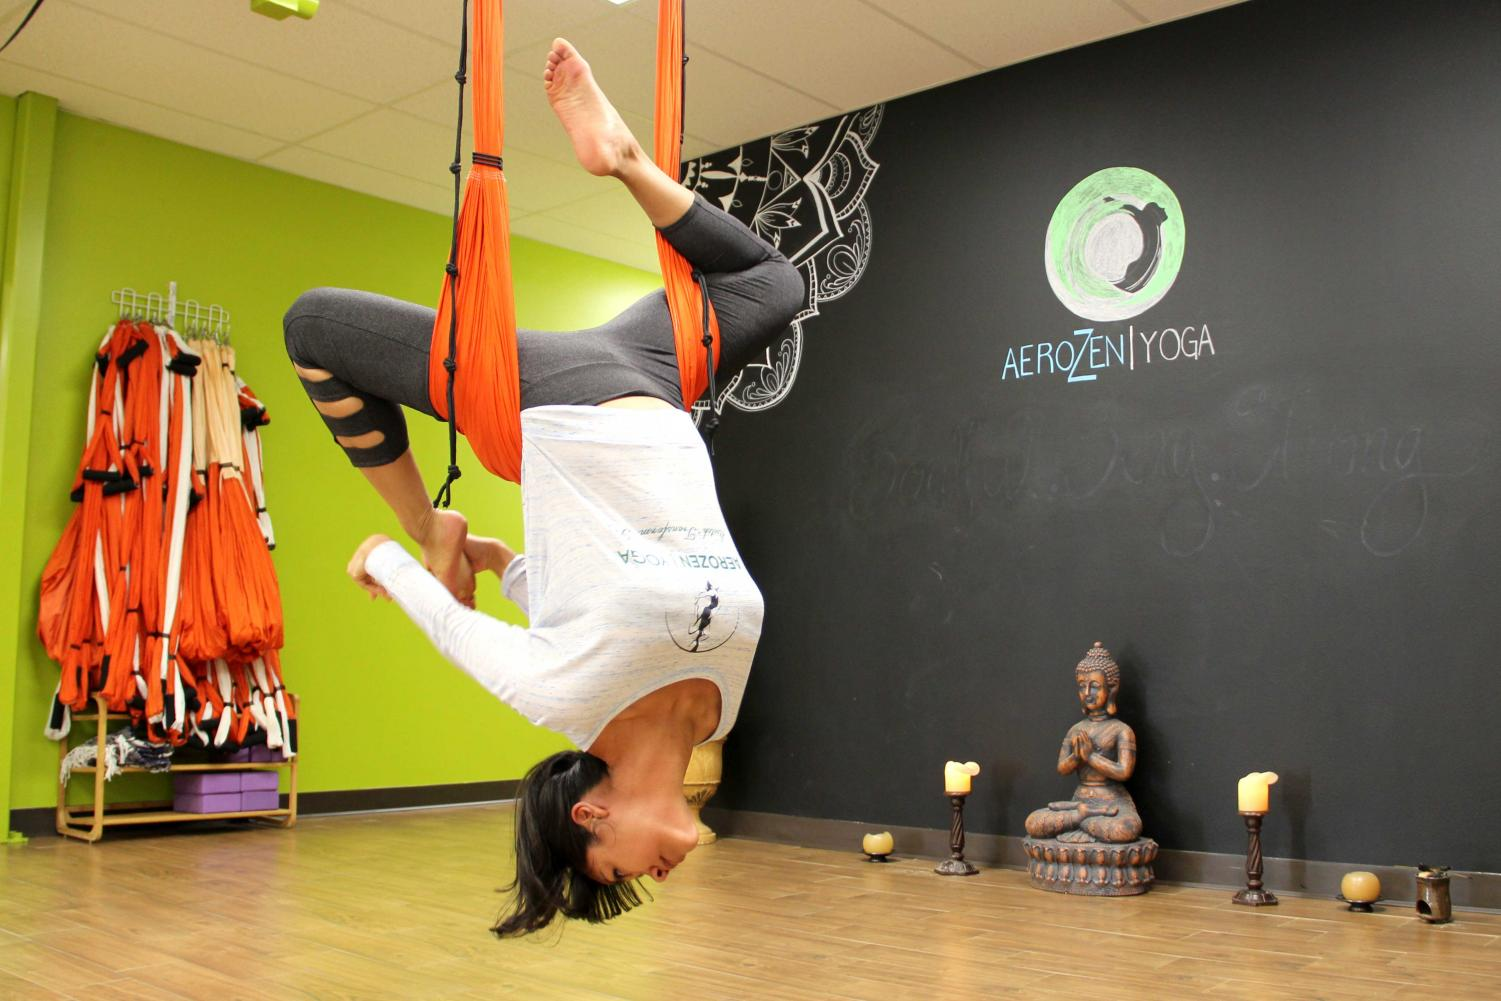 Instructor and owner of AeroZen Yoga Nahsyelli Elena Hernandez demonstrates the advanced techniques used during AeroYoga class at the studio located in 10110 Montwood Drive